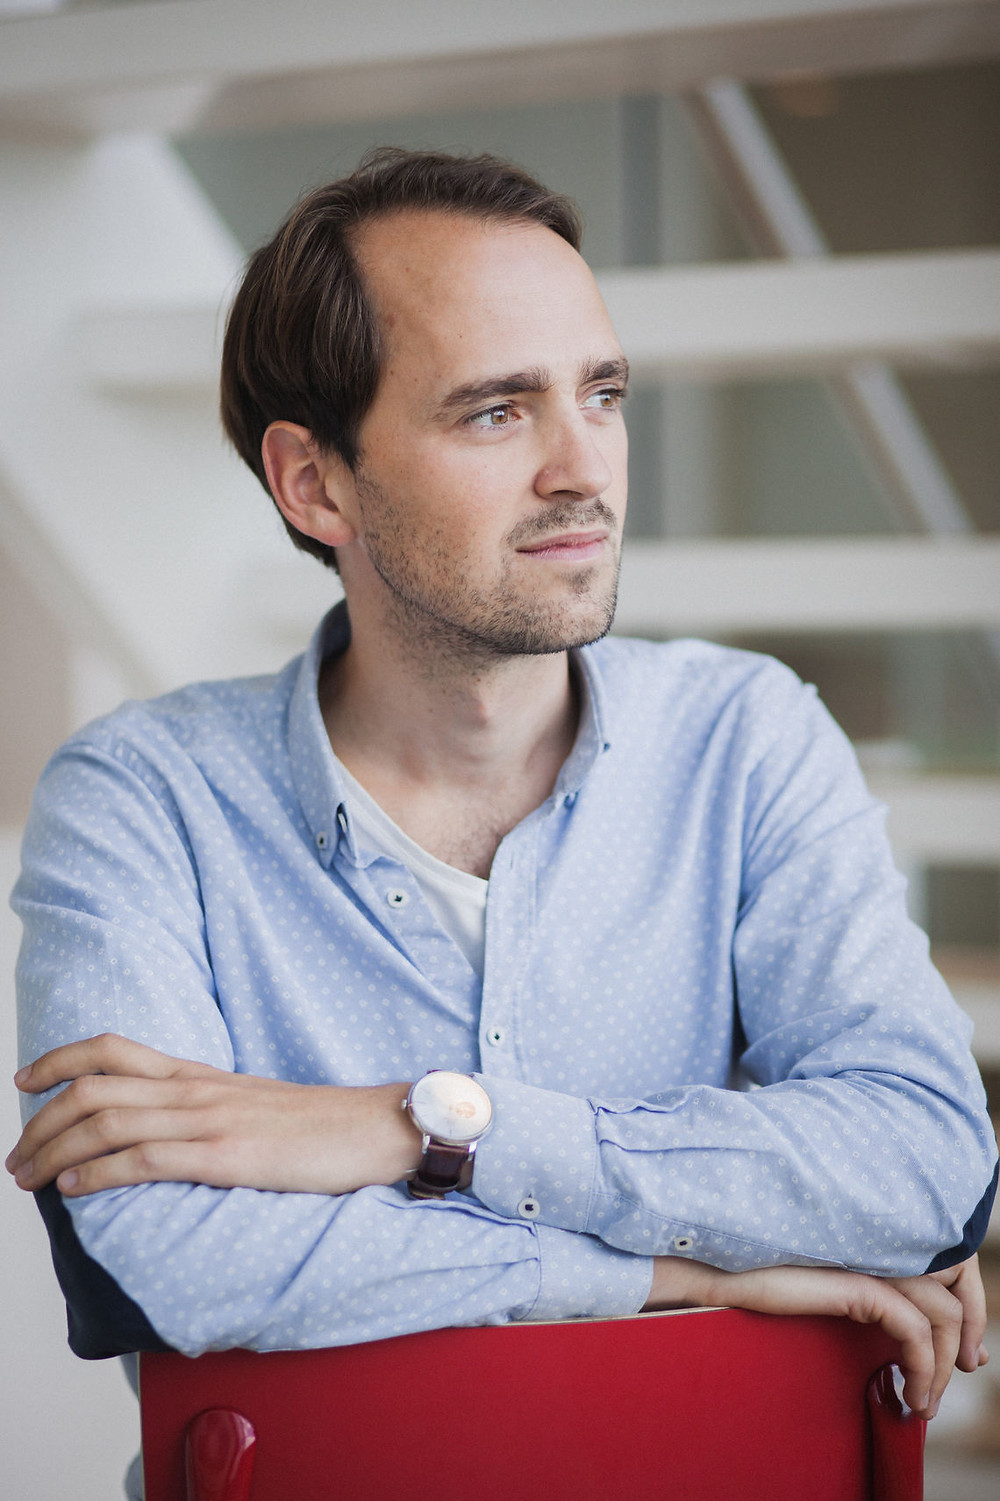 Aaike van Vugt is the CEO and co-founder of VSPARTICLE